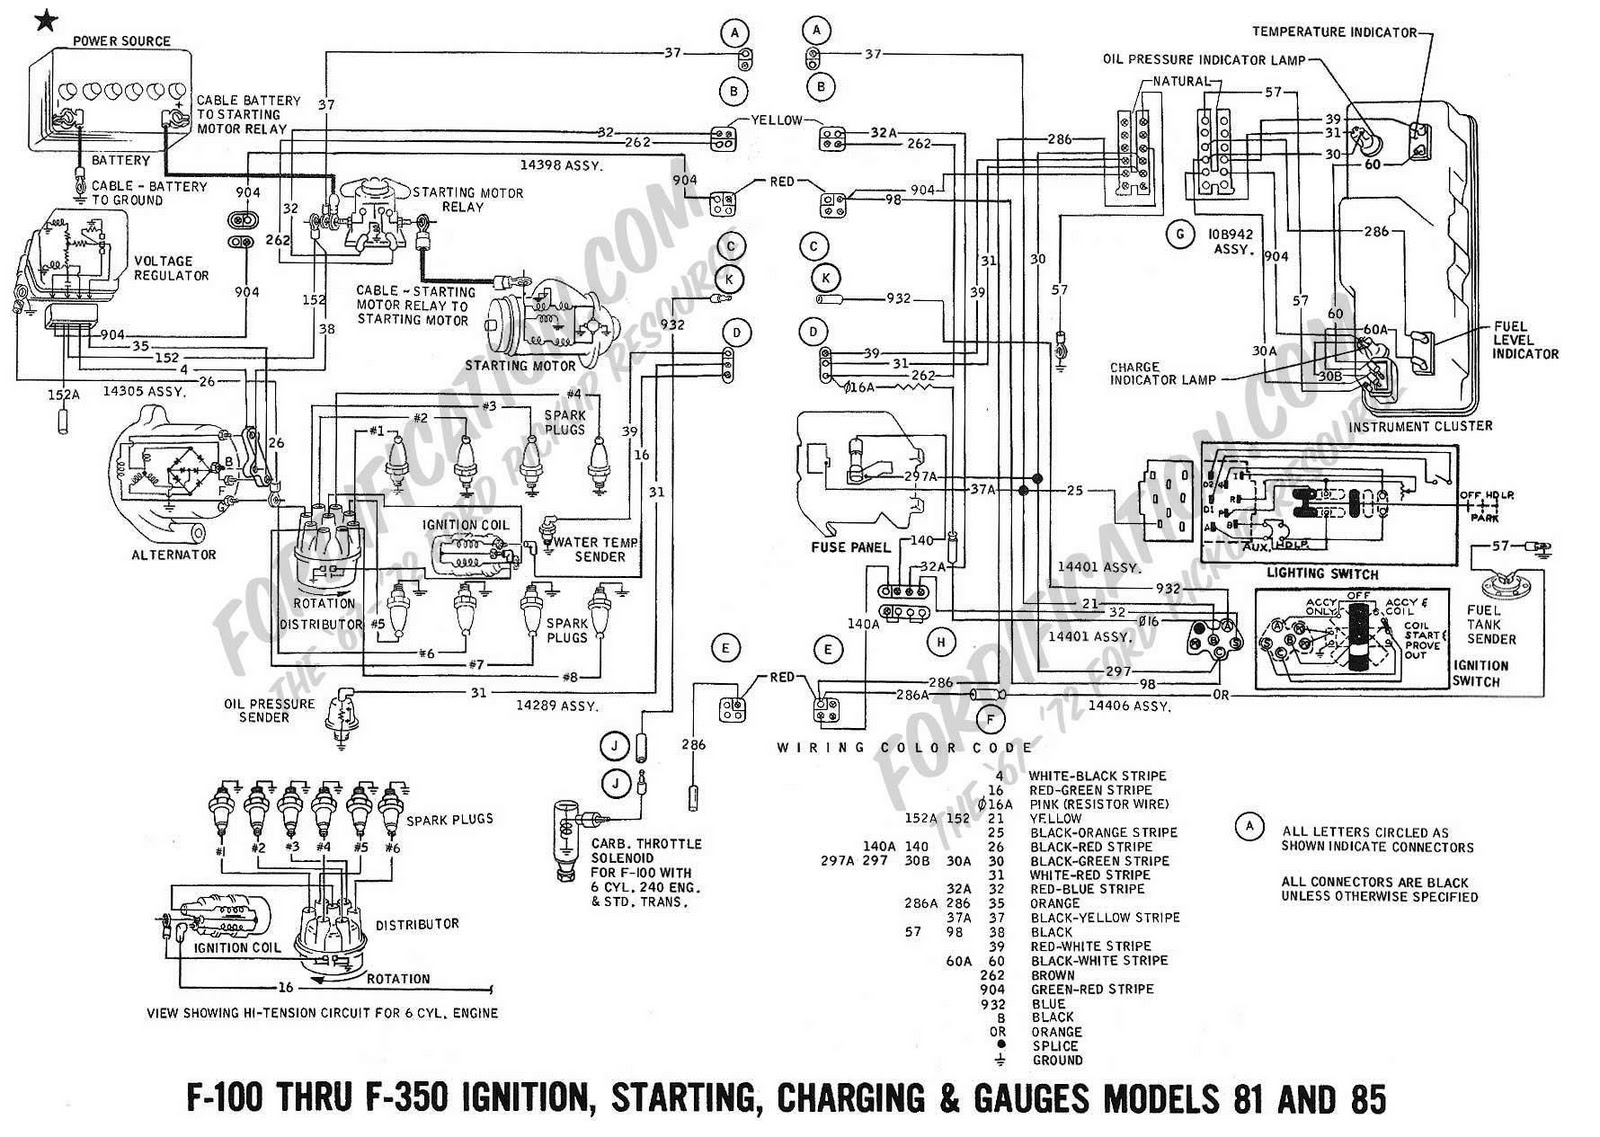 1969 Ford F100F350 Ignition, Starting, Charging, And